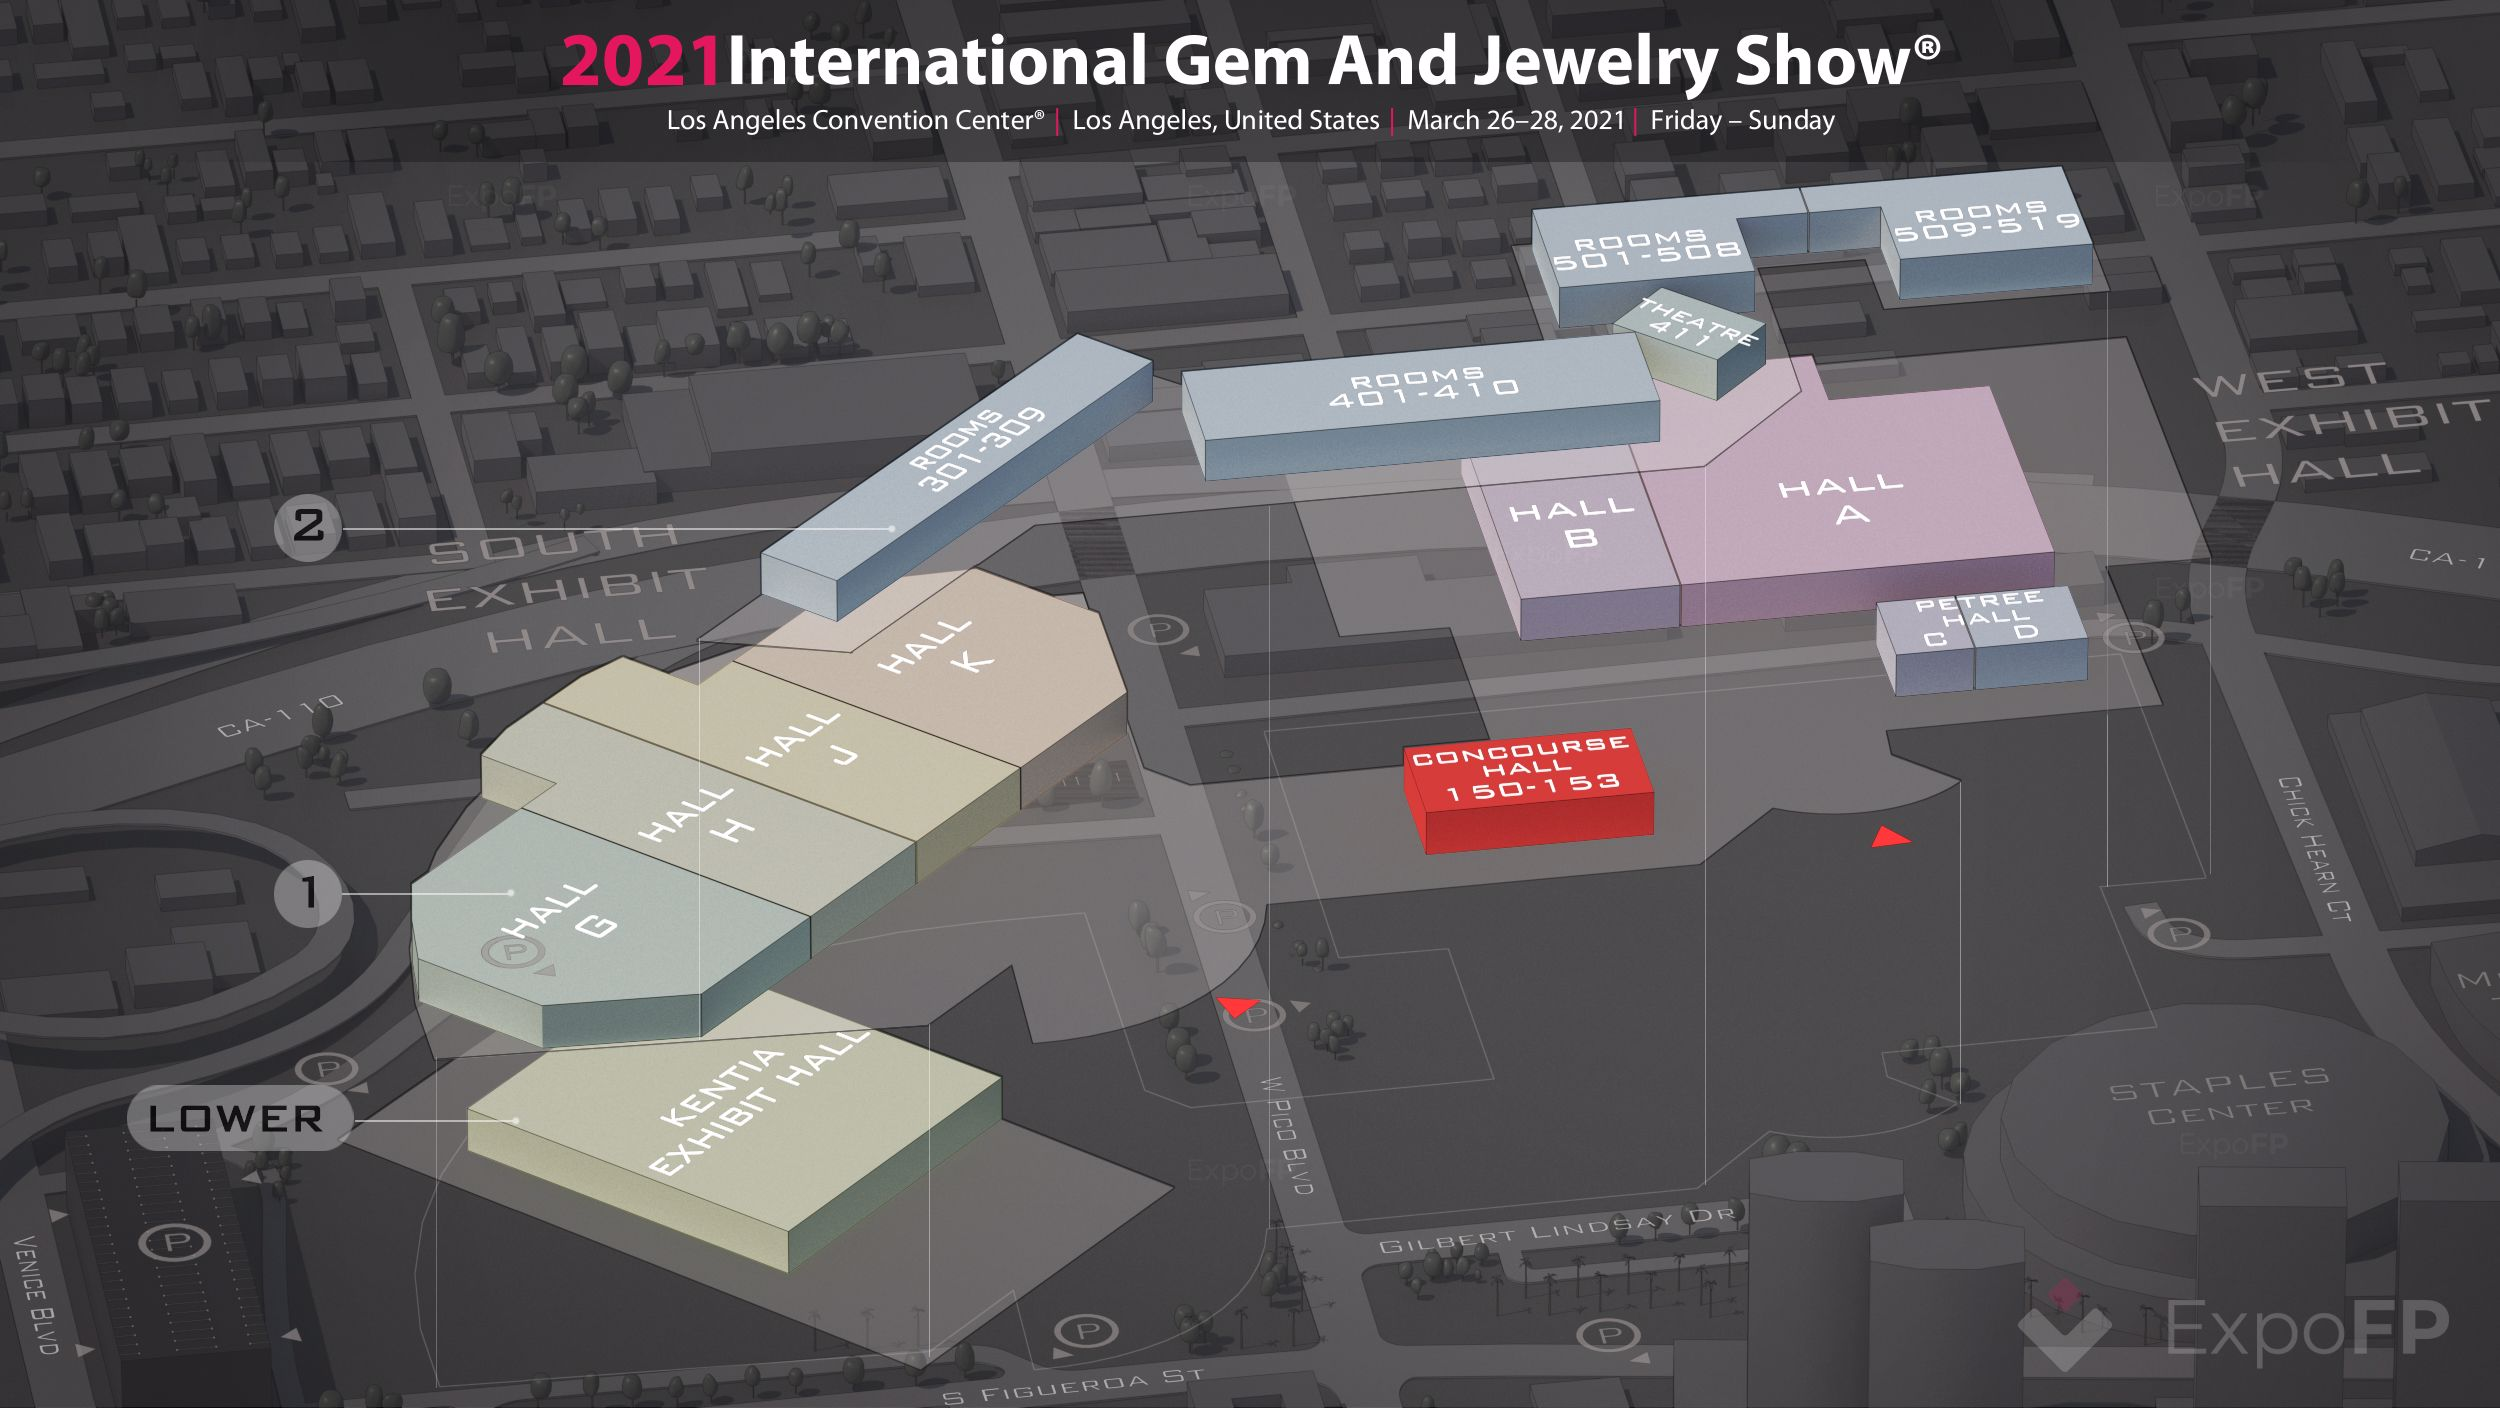 International Gem and Jewelry Show 2021 in Los Angeles ...